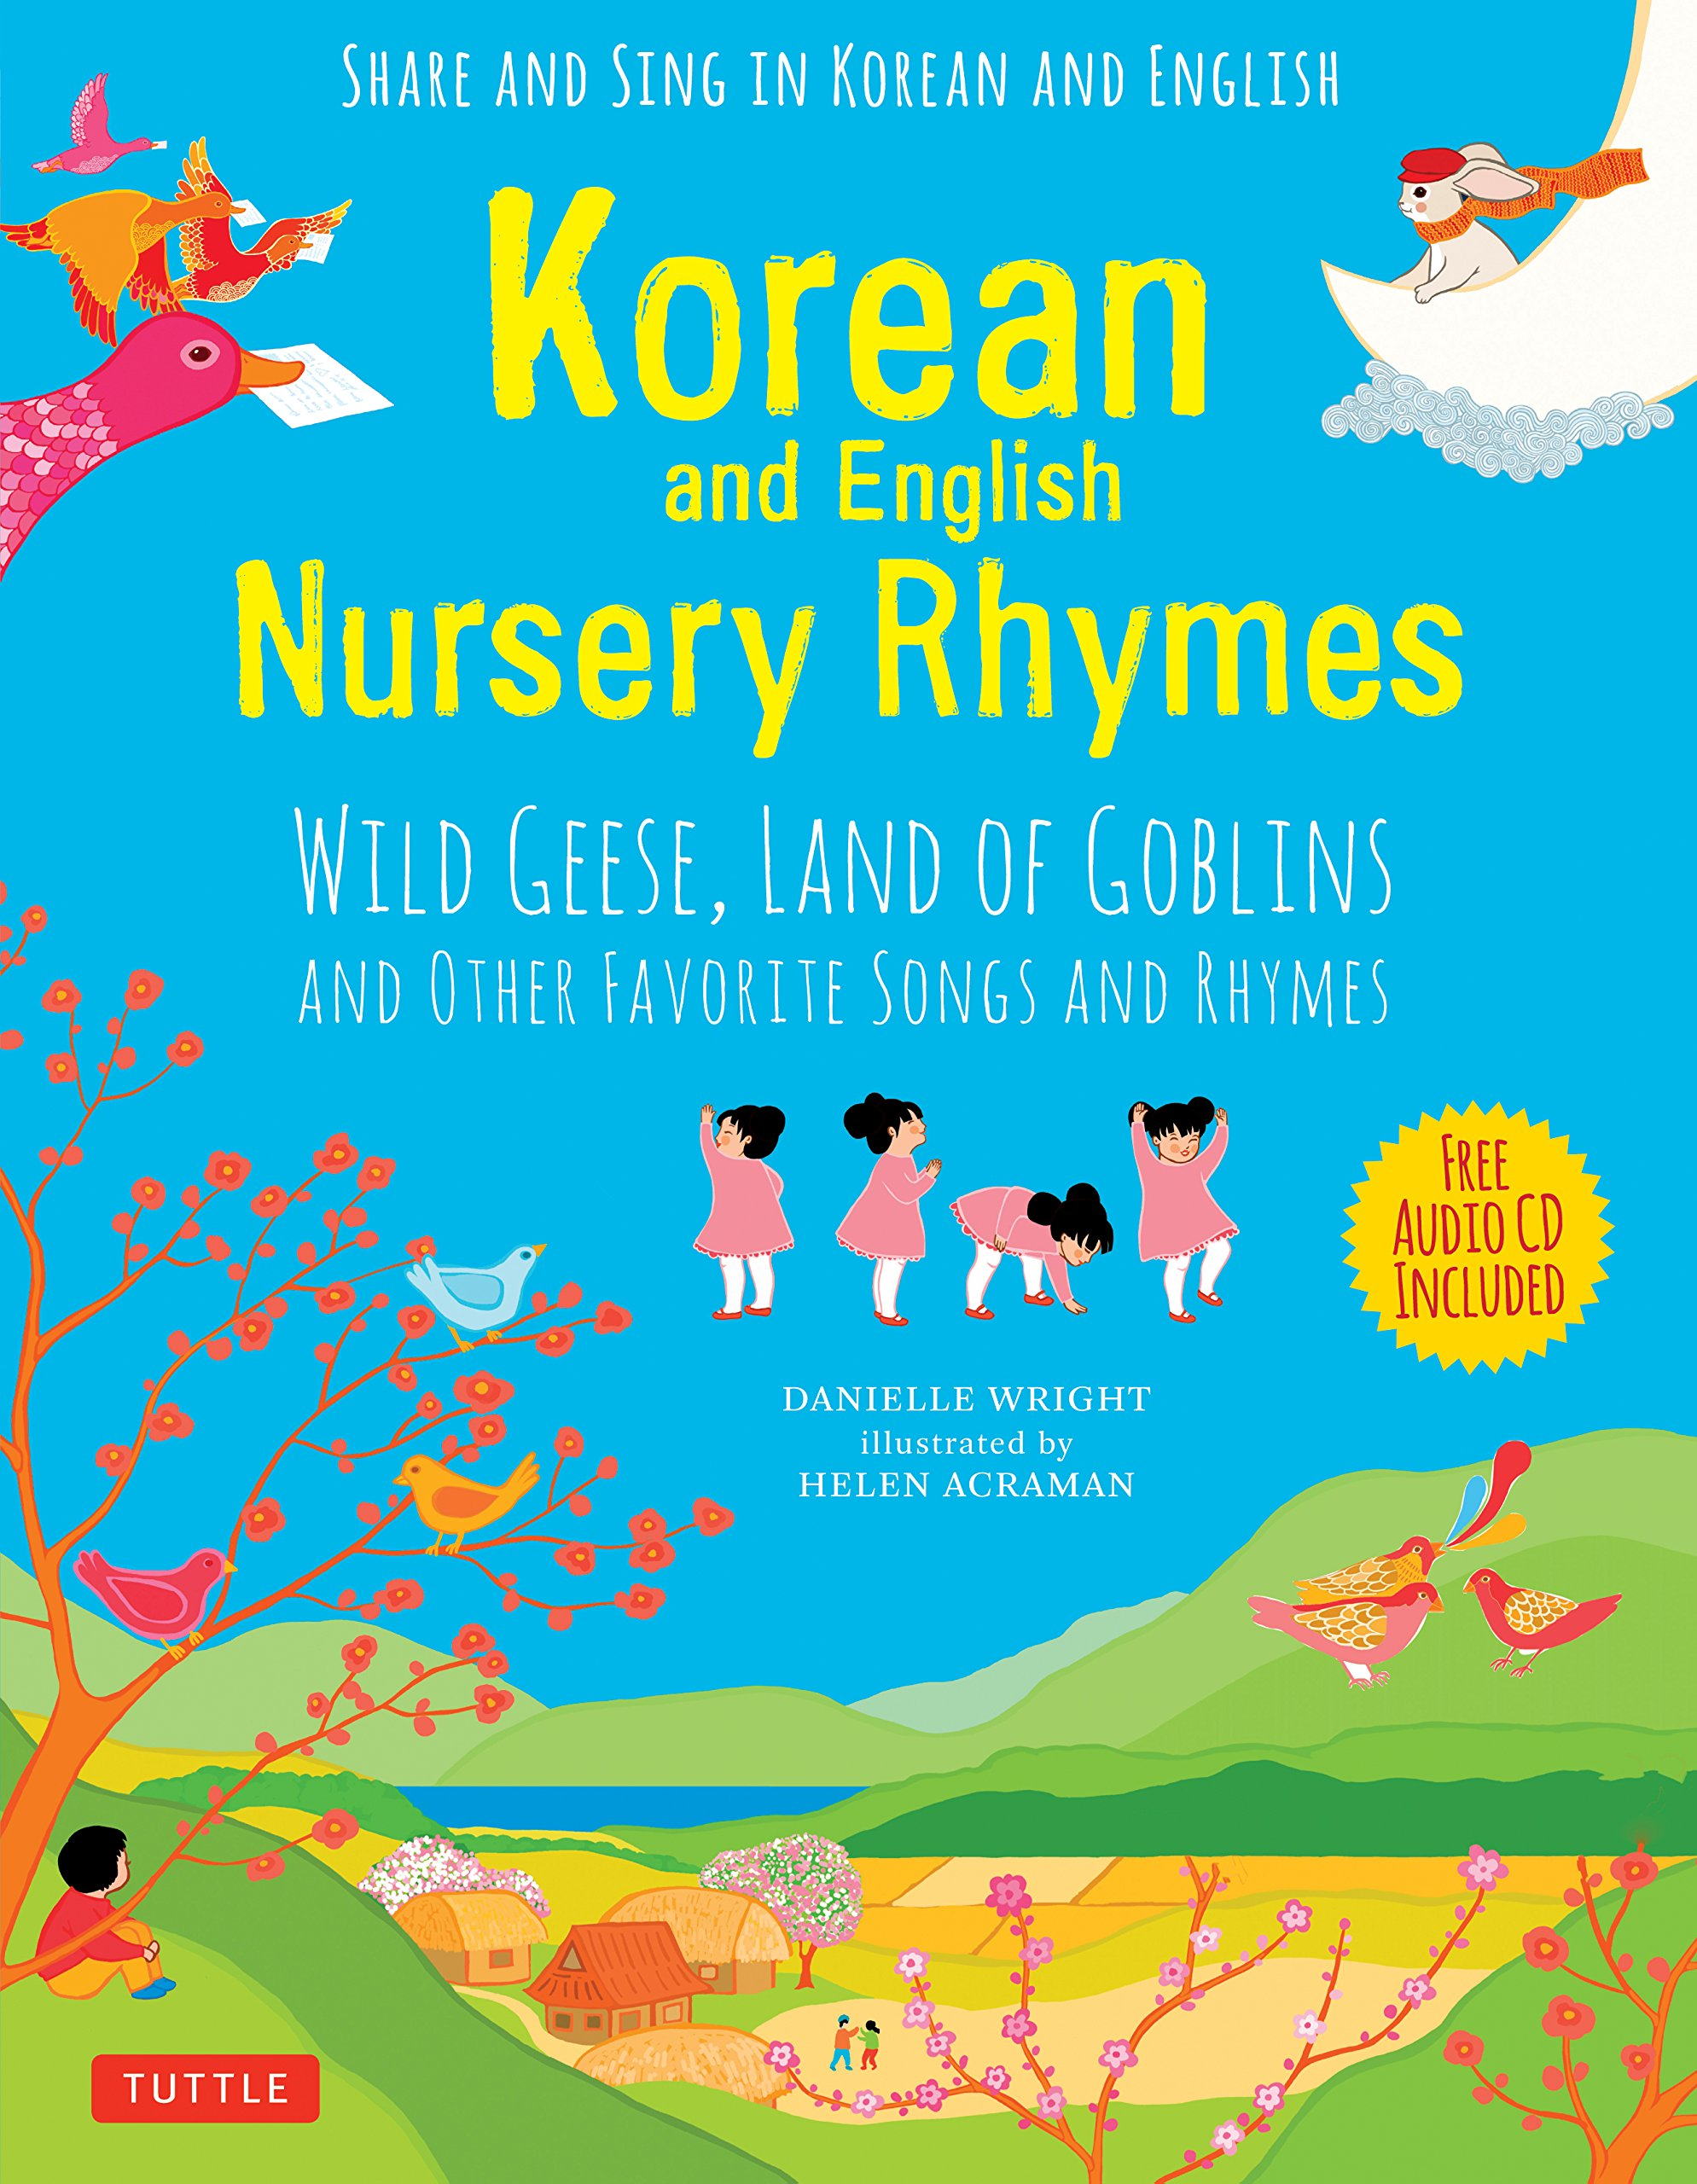 Korean and English Nursery Rhymes: Wild Geese, Land of Goblins and Other Favorite Songs and Rhymes (Audio Disc in Korean & English Included) by Tuttle Publishing